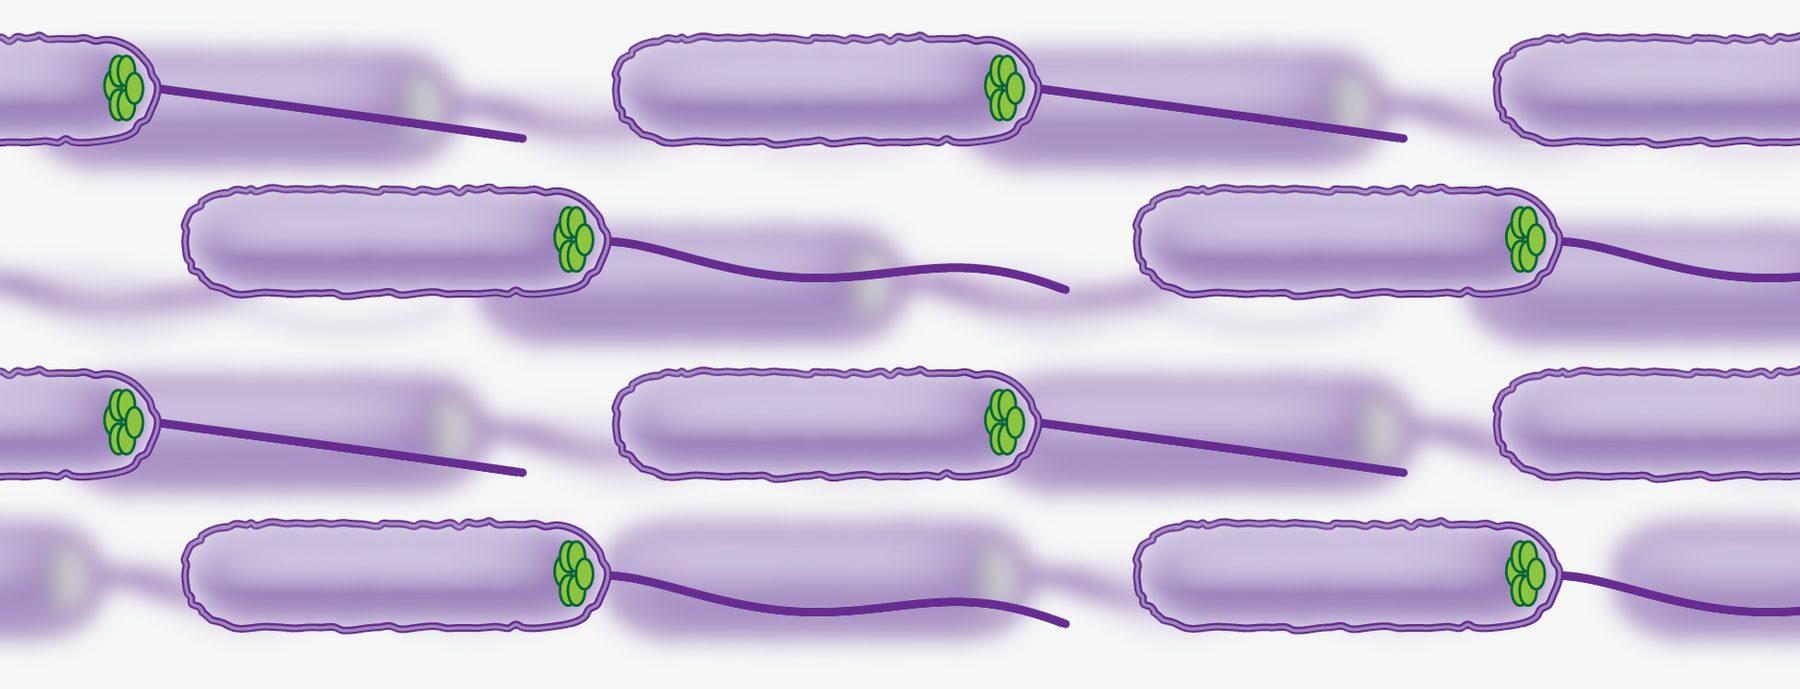 Infographic: Microbial Moves